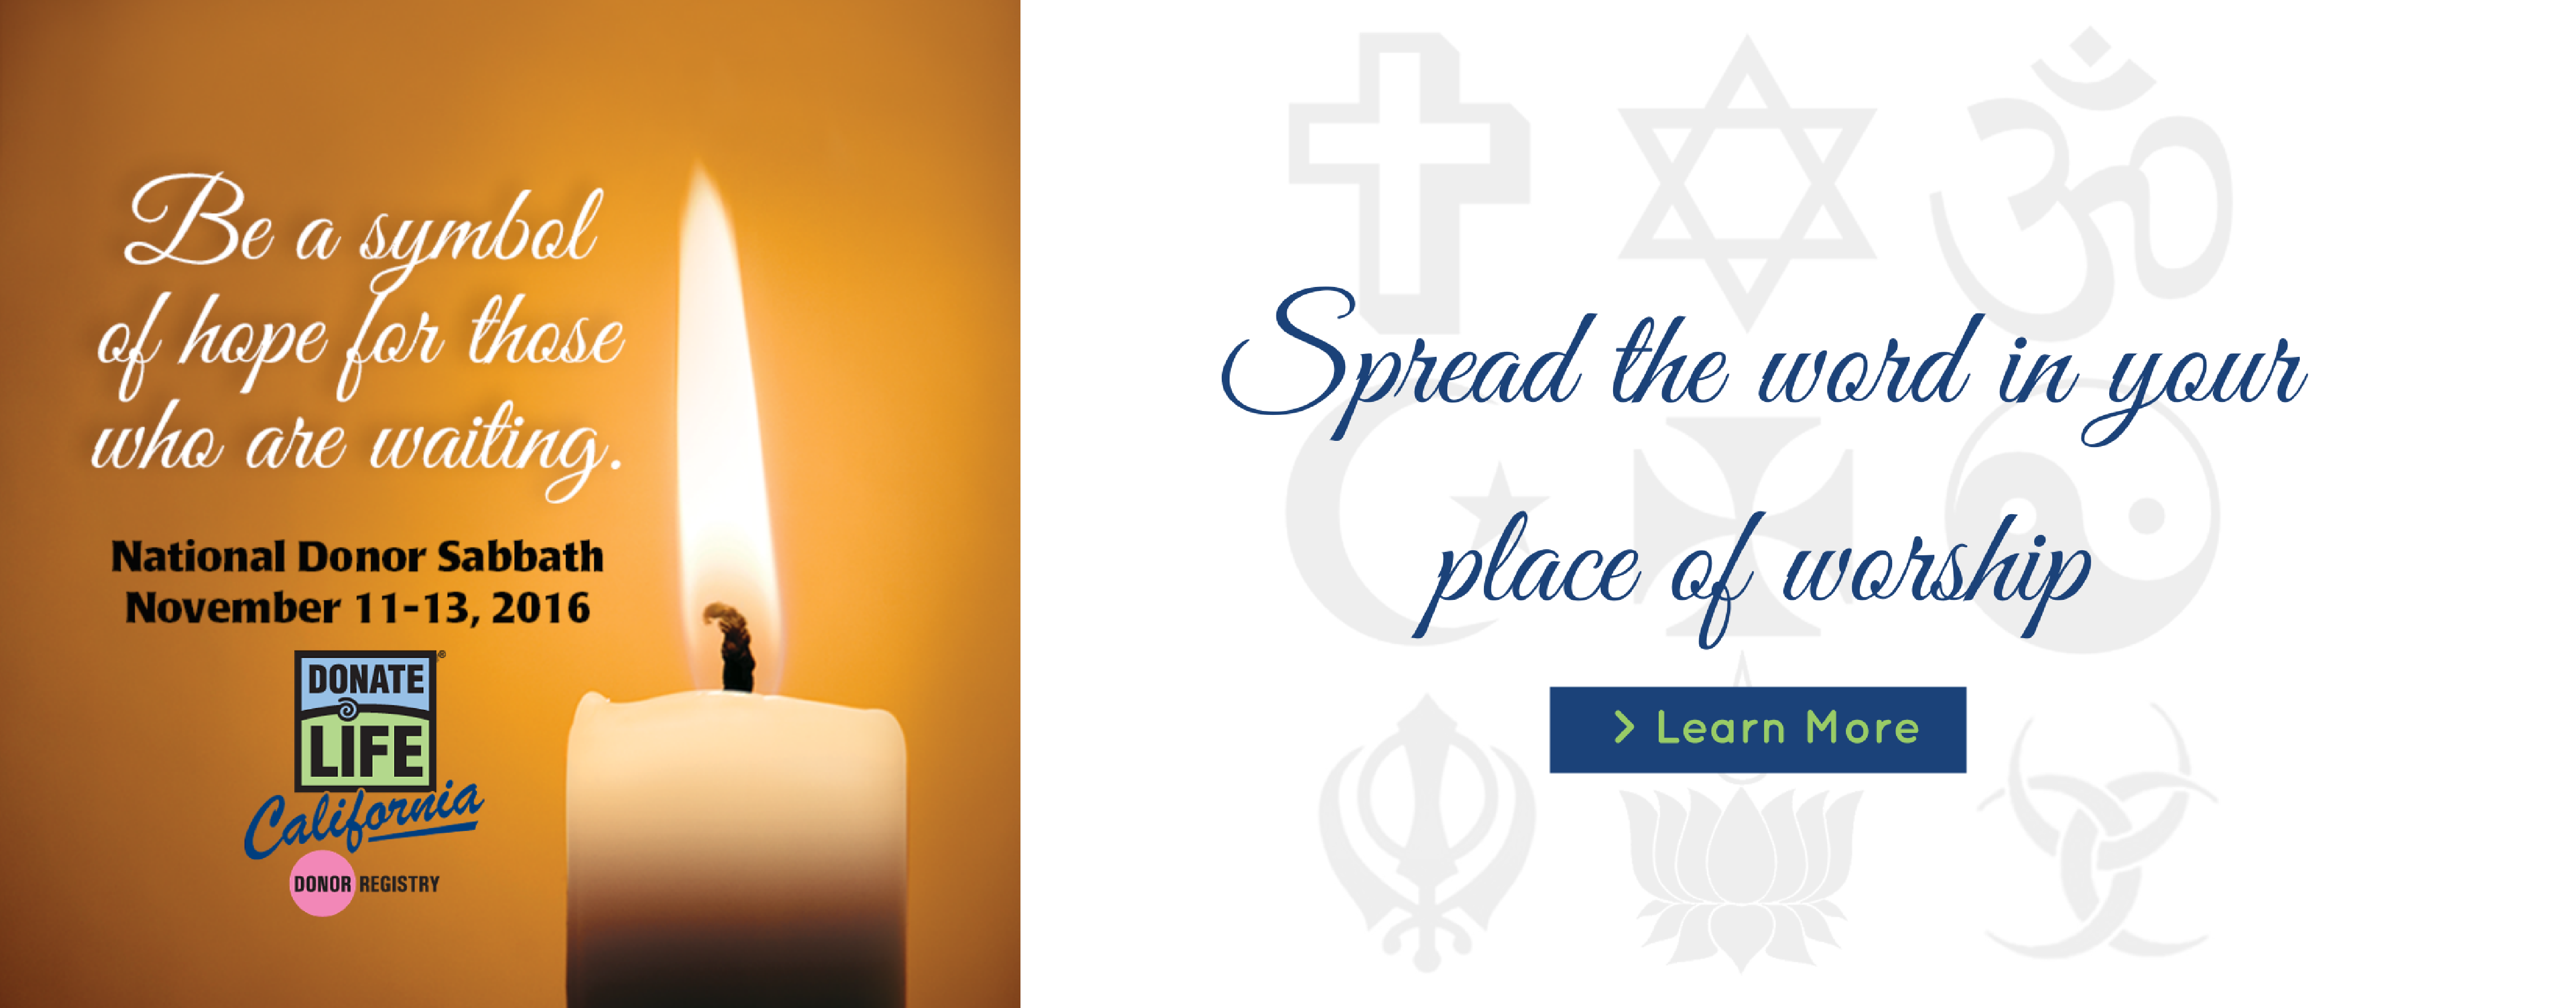 Spread the word in your place of worship during National Donor Sabbath, November 11-13, 2016.